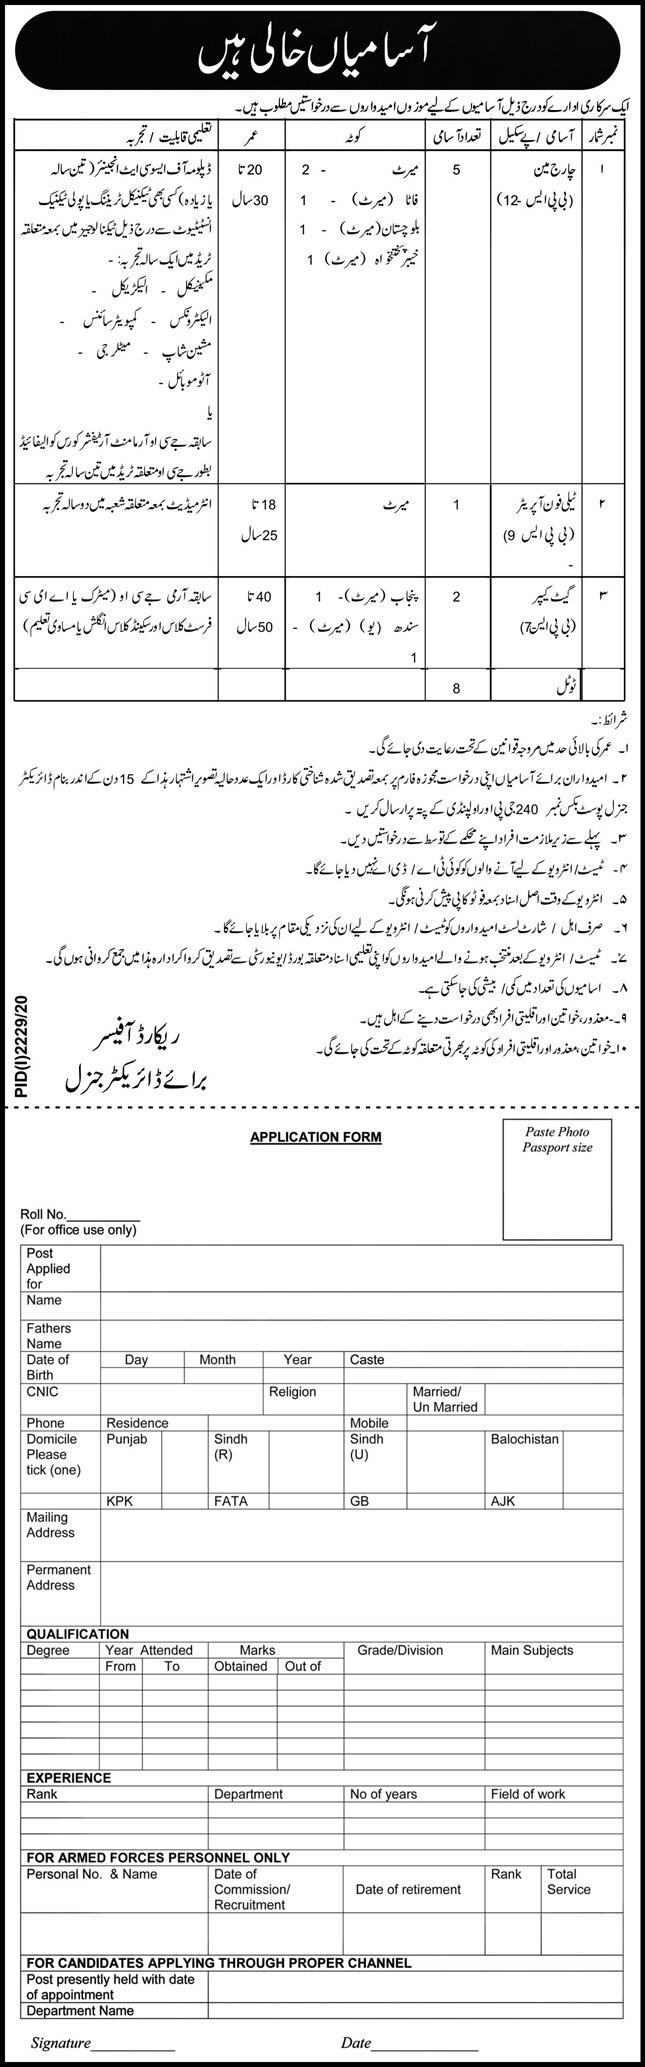 P.O Box No. 240 GPO Rawalpindi Jobs 2020